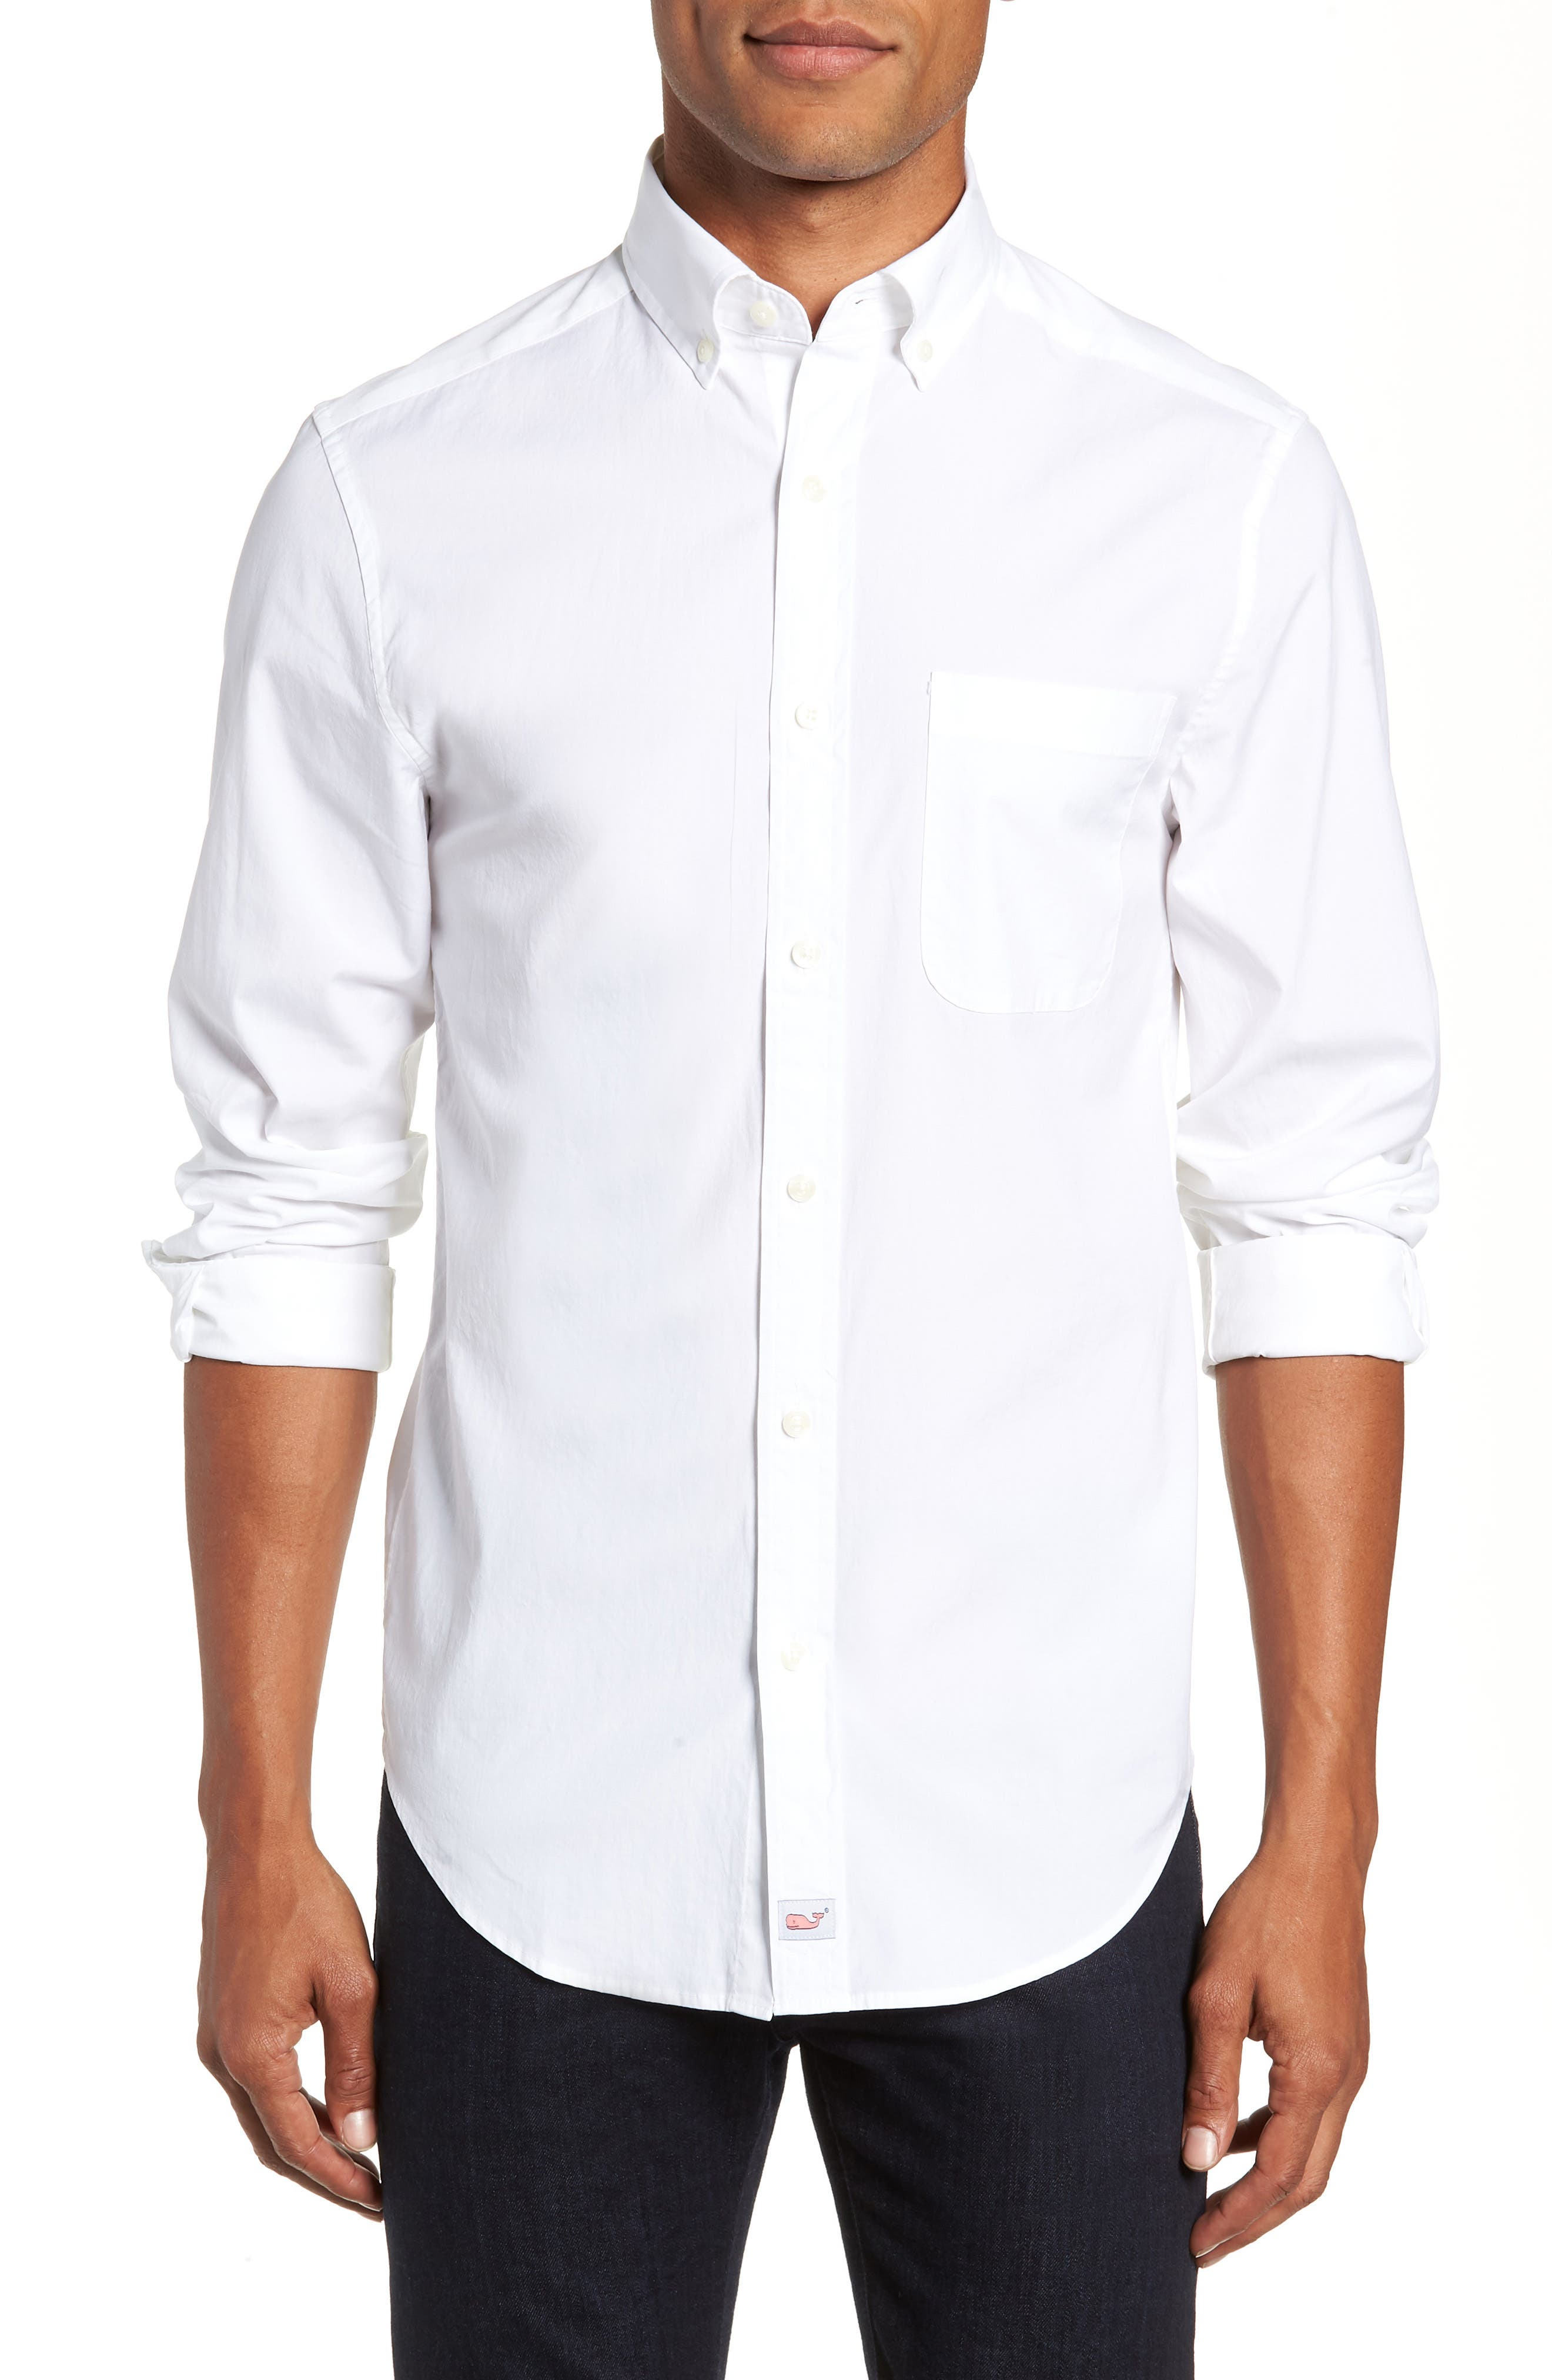 Eoe Murray Regular Fit Sport Shirt,                             Main thumbnail 1, color,                             WHITE CAP